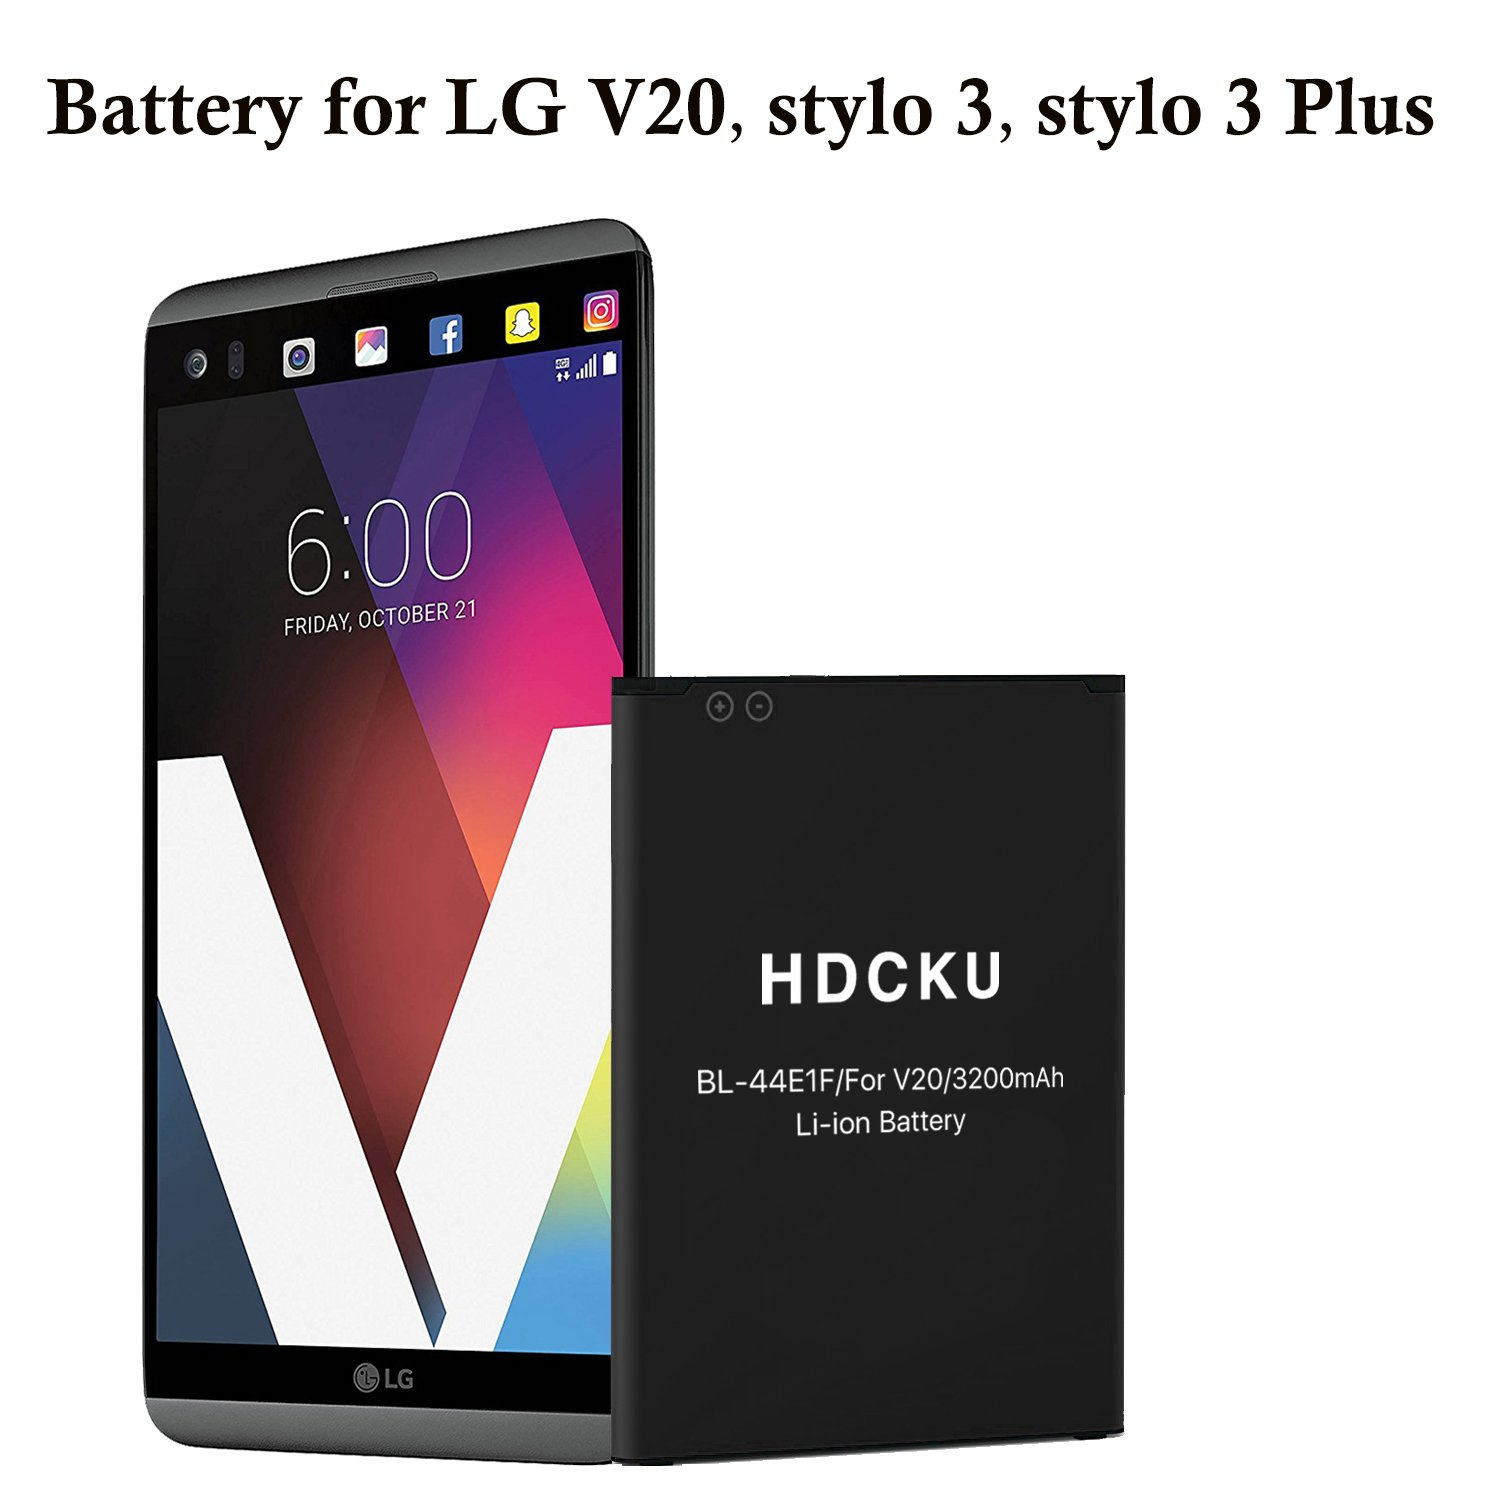 HDCKU Replacement Battery for LG V20, LG Stylo 3, LG Stylo 3 Plus BL-44E1F Spare OEM Battery(12 Month Warranty)